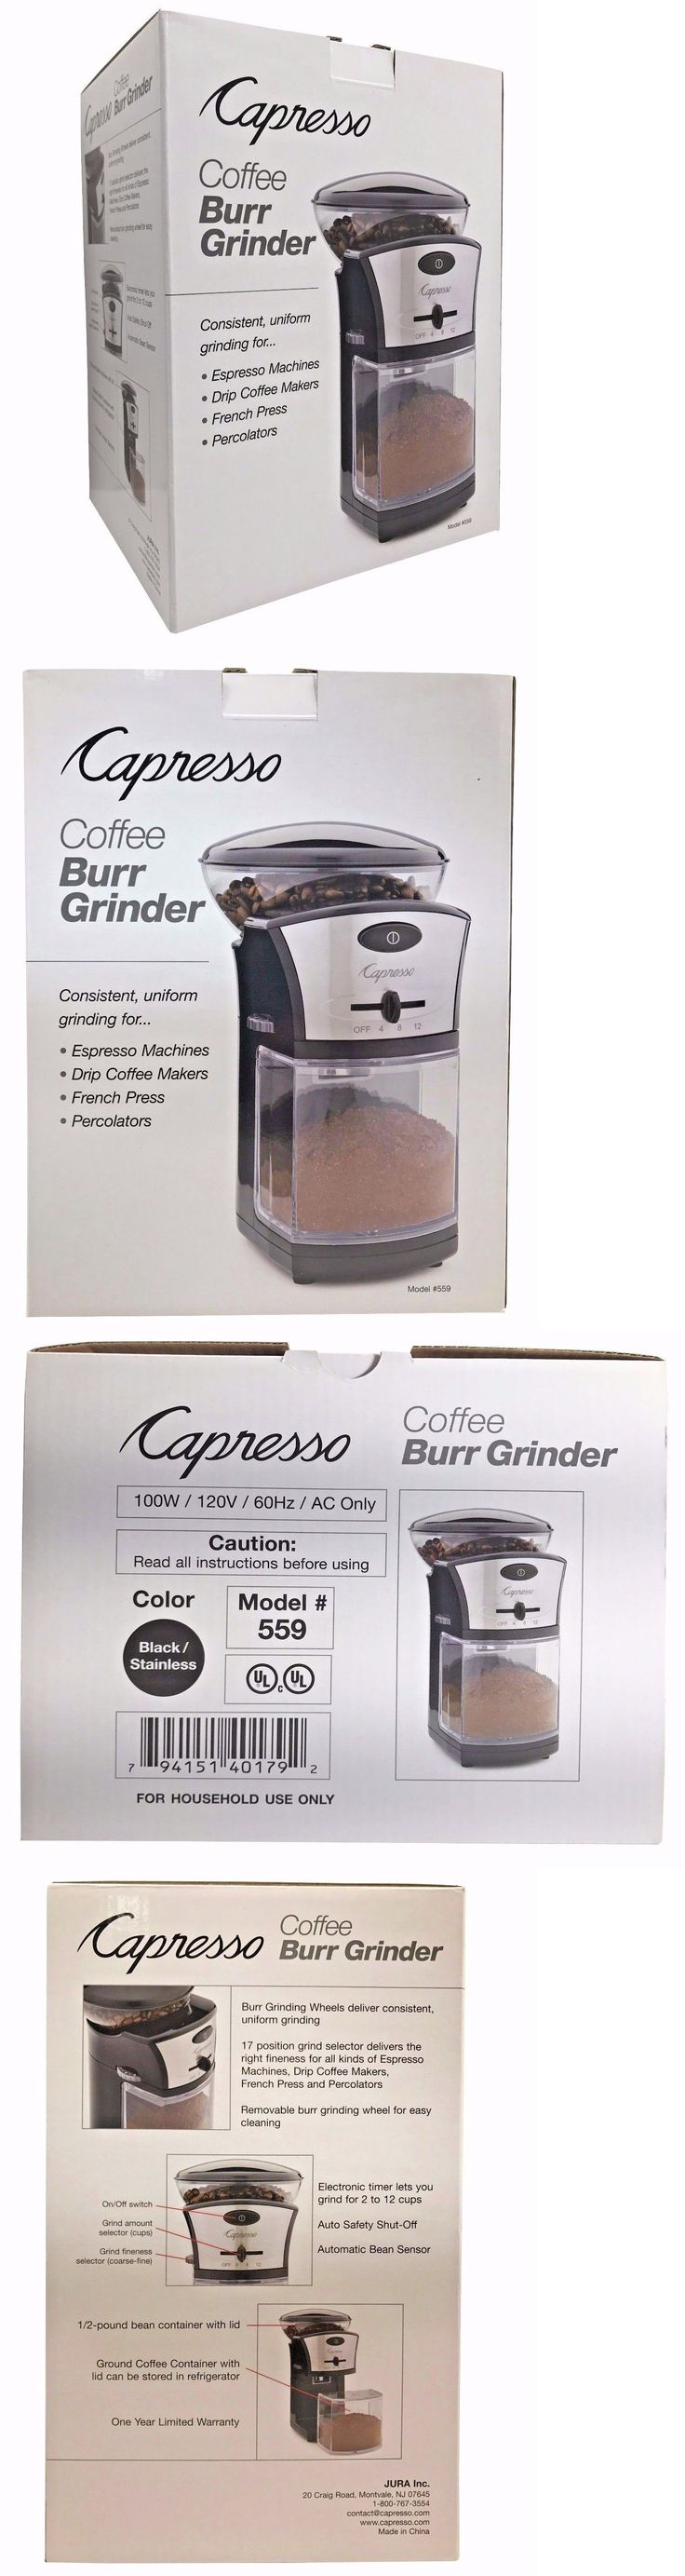 Coffee Grinders 32882: Capresso Coffee Burr Grinder 17 Grind Refinements 2-12 Cups Model #559 -> BUY IT NOW ONLY: $46.2 on eBay!